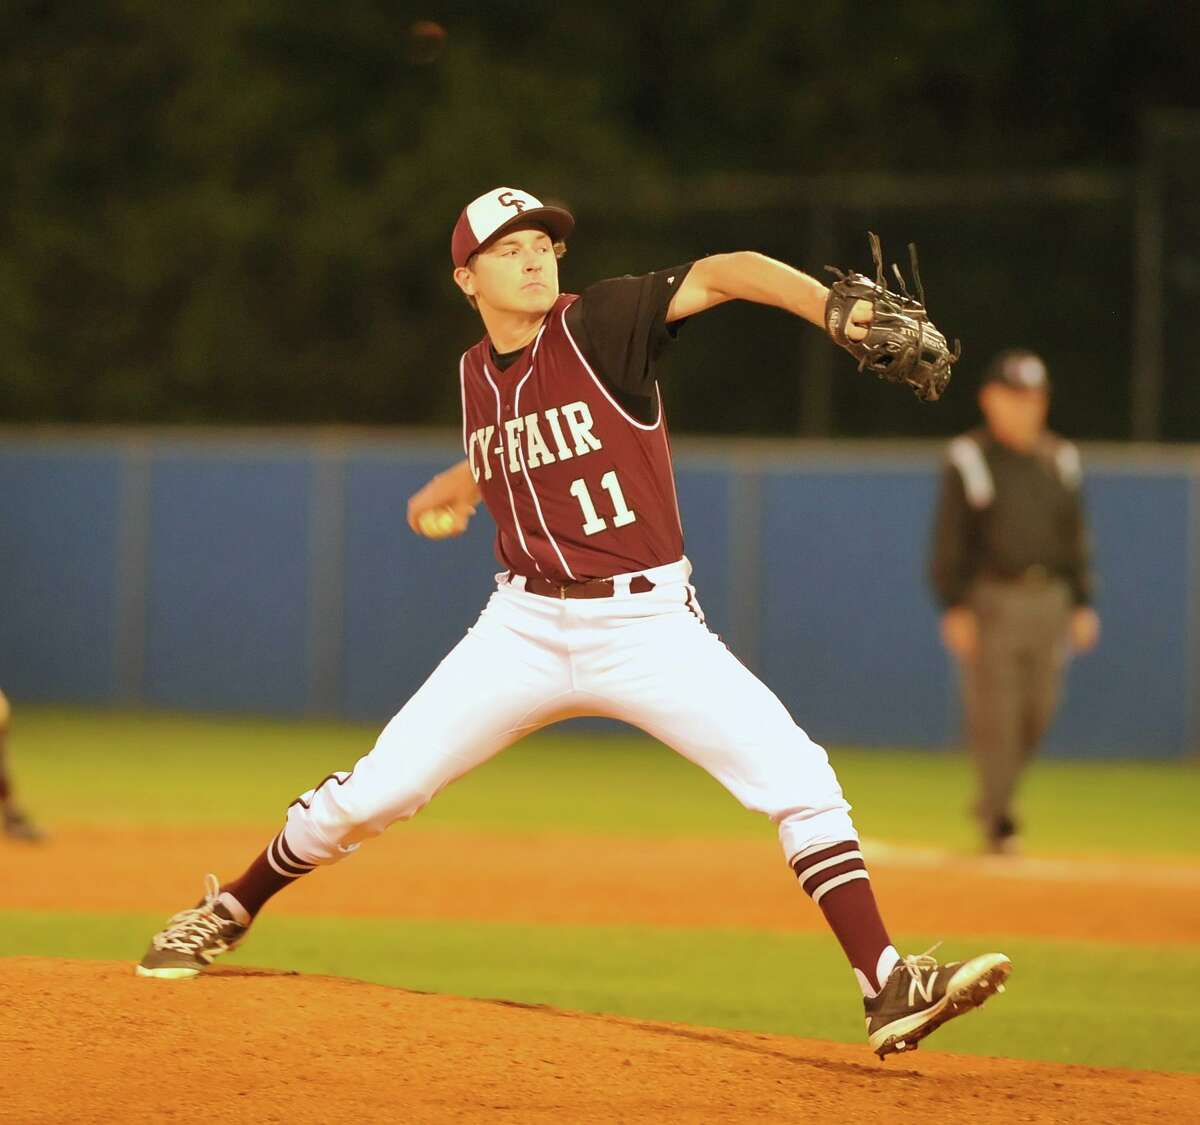 Former Cy-Fair High baseball player Hayden Wesneski was promoted to Double-A Somerset in the New York Yankees farm system Tuesday, June 15.